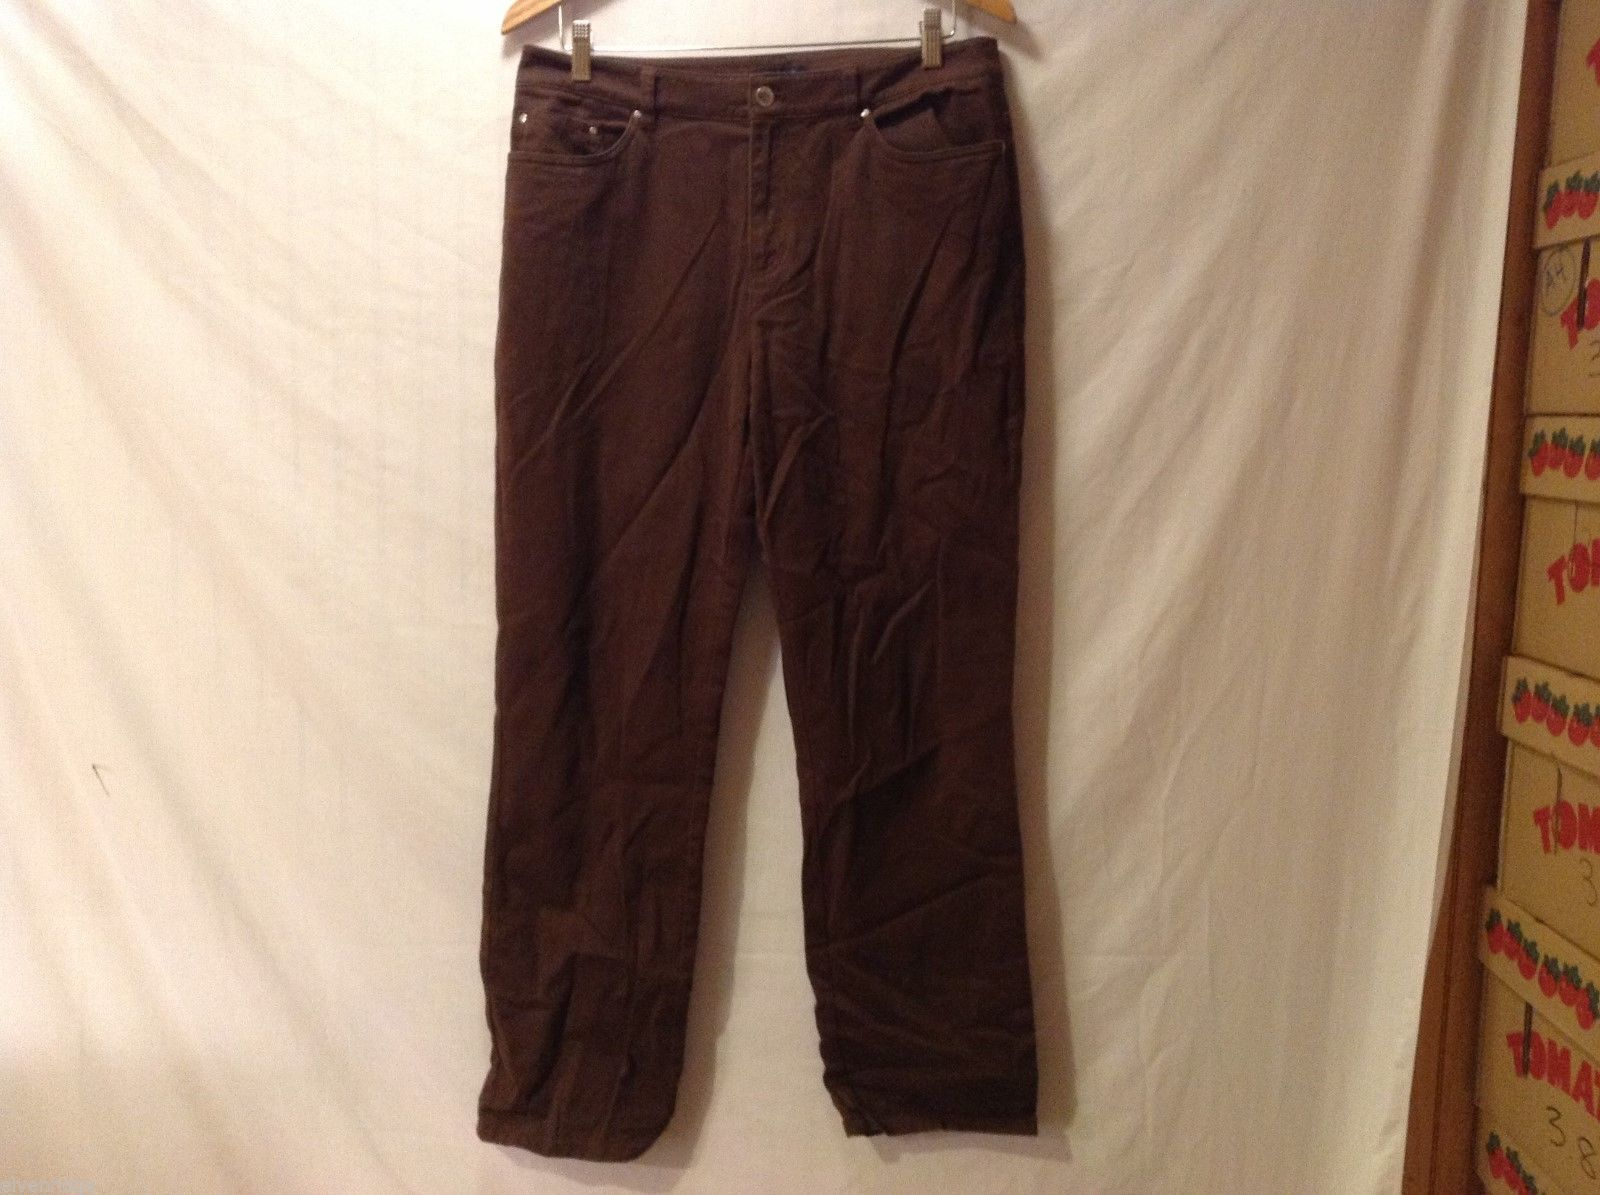 Jones New York Womens Brown Stretch Jeans, Size 10